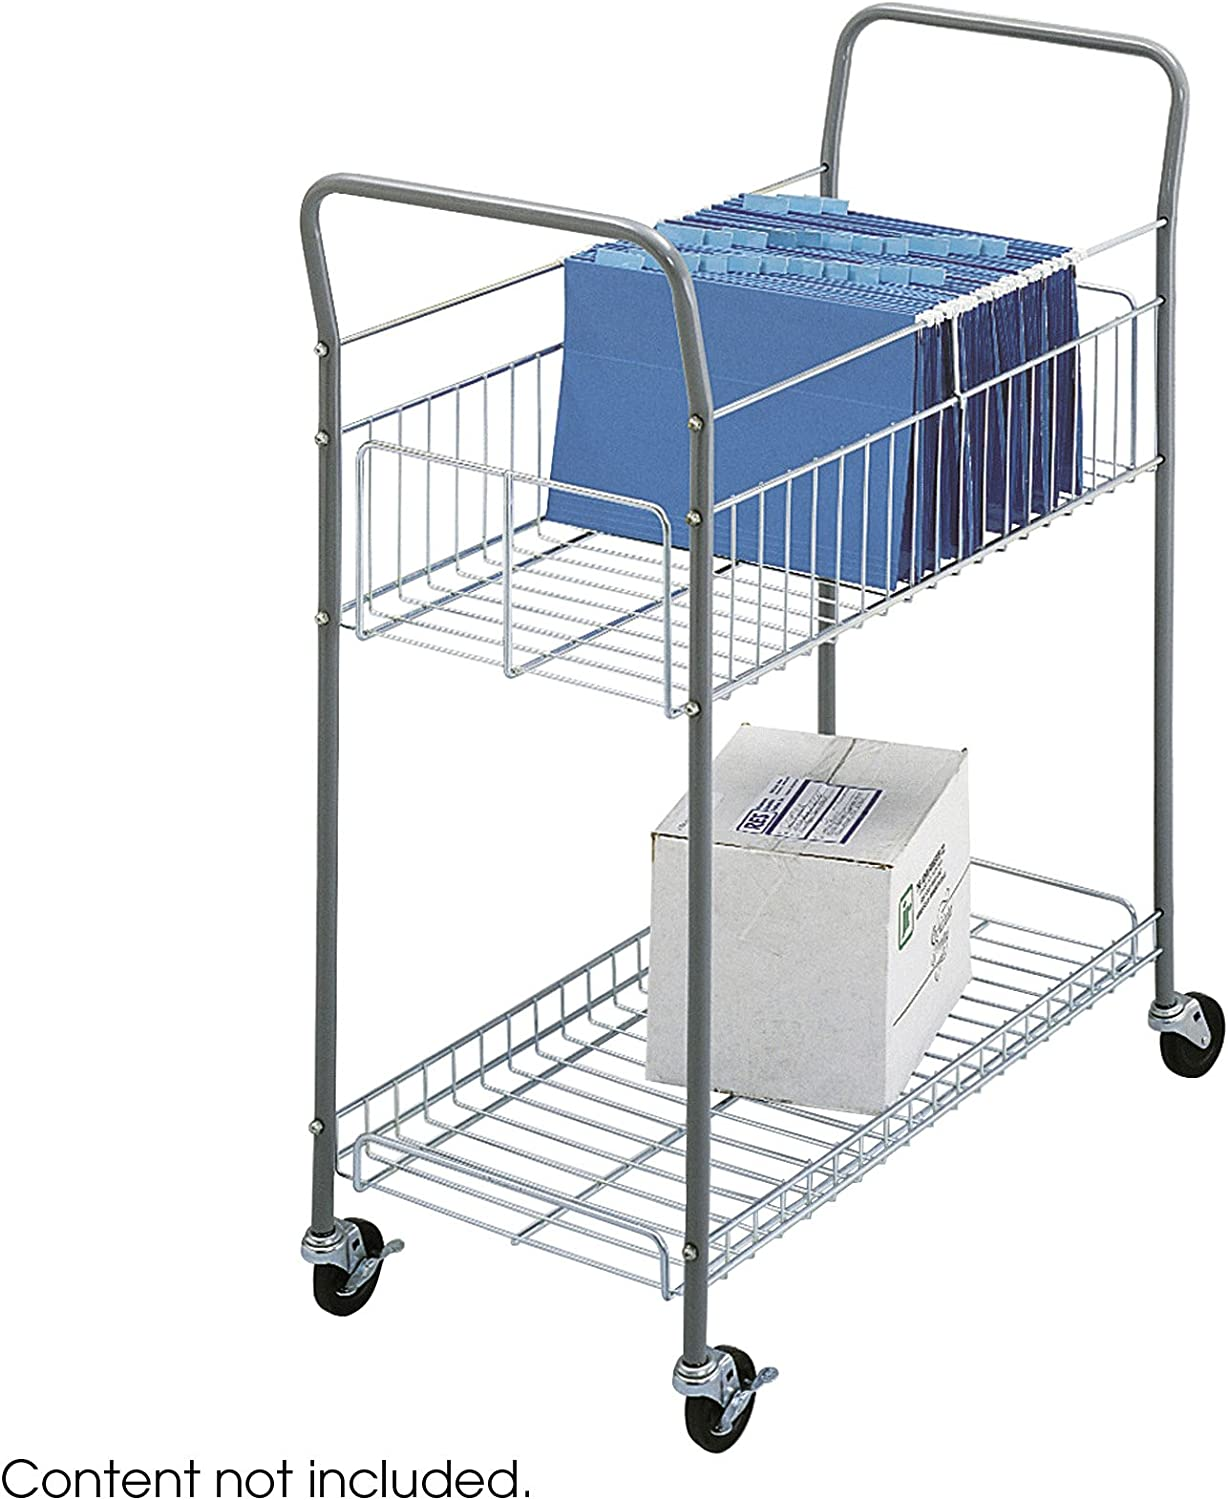 B00006IC1V Safco Products 7754 Economy Mail Cart, Gray 71JYU7XBd2BL.SL1500_